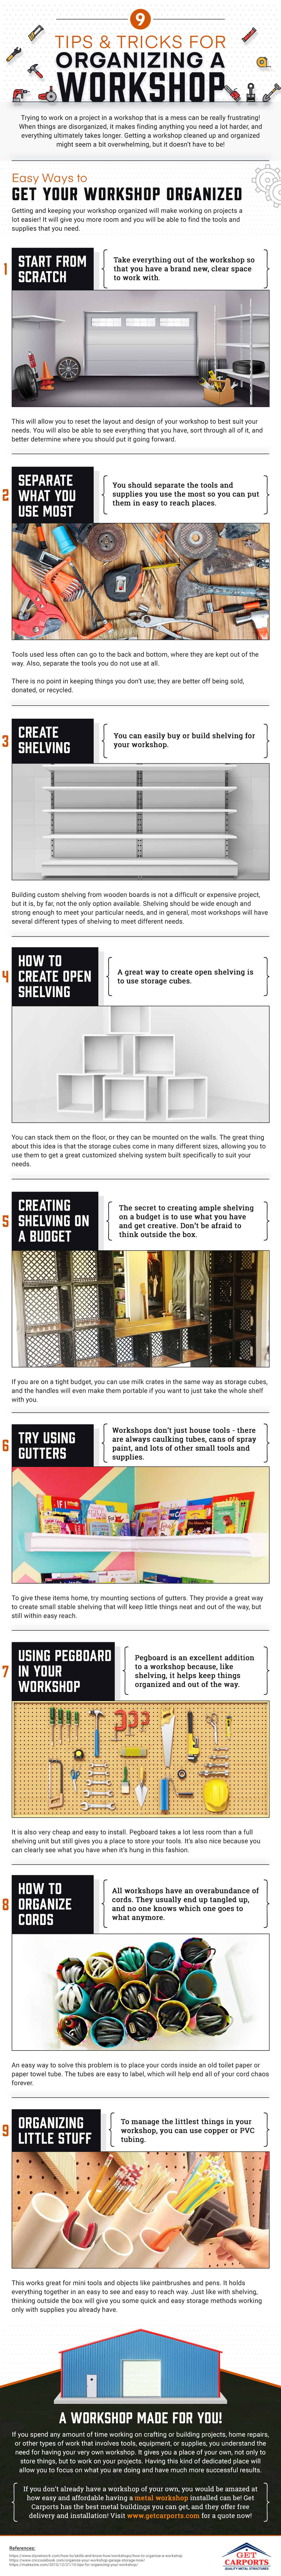 9 Tips & Tricks to Organize Your Workshop